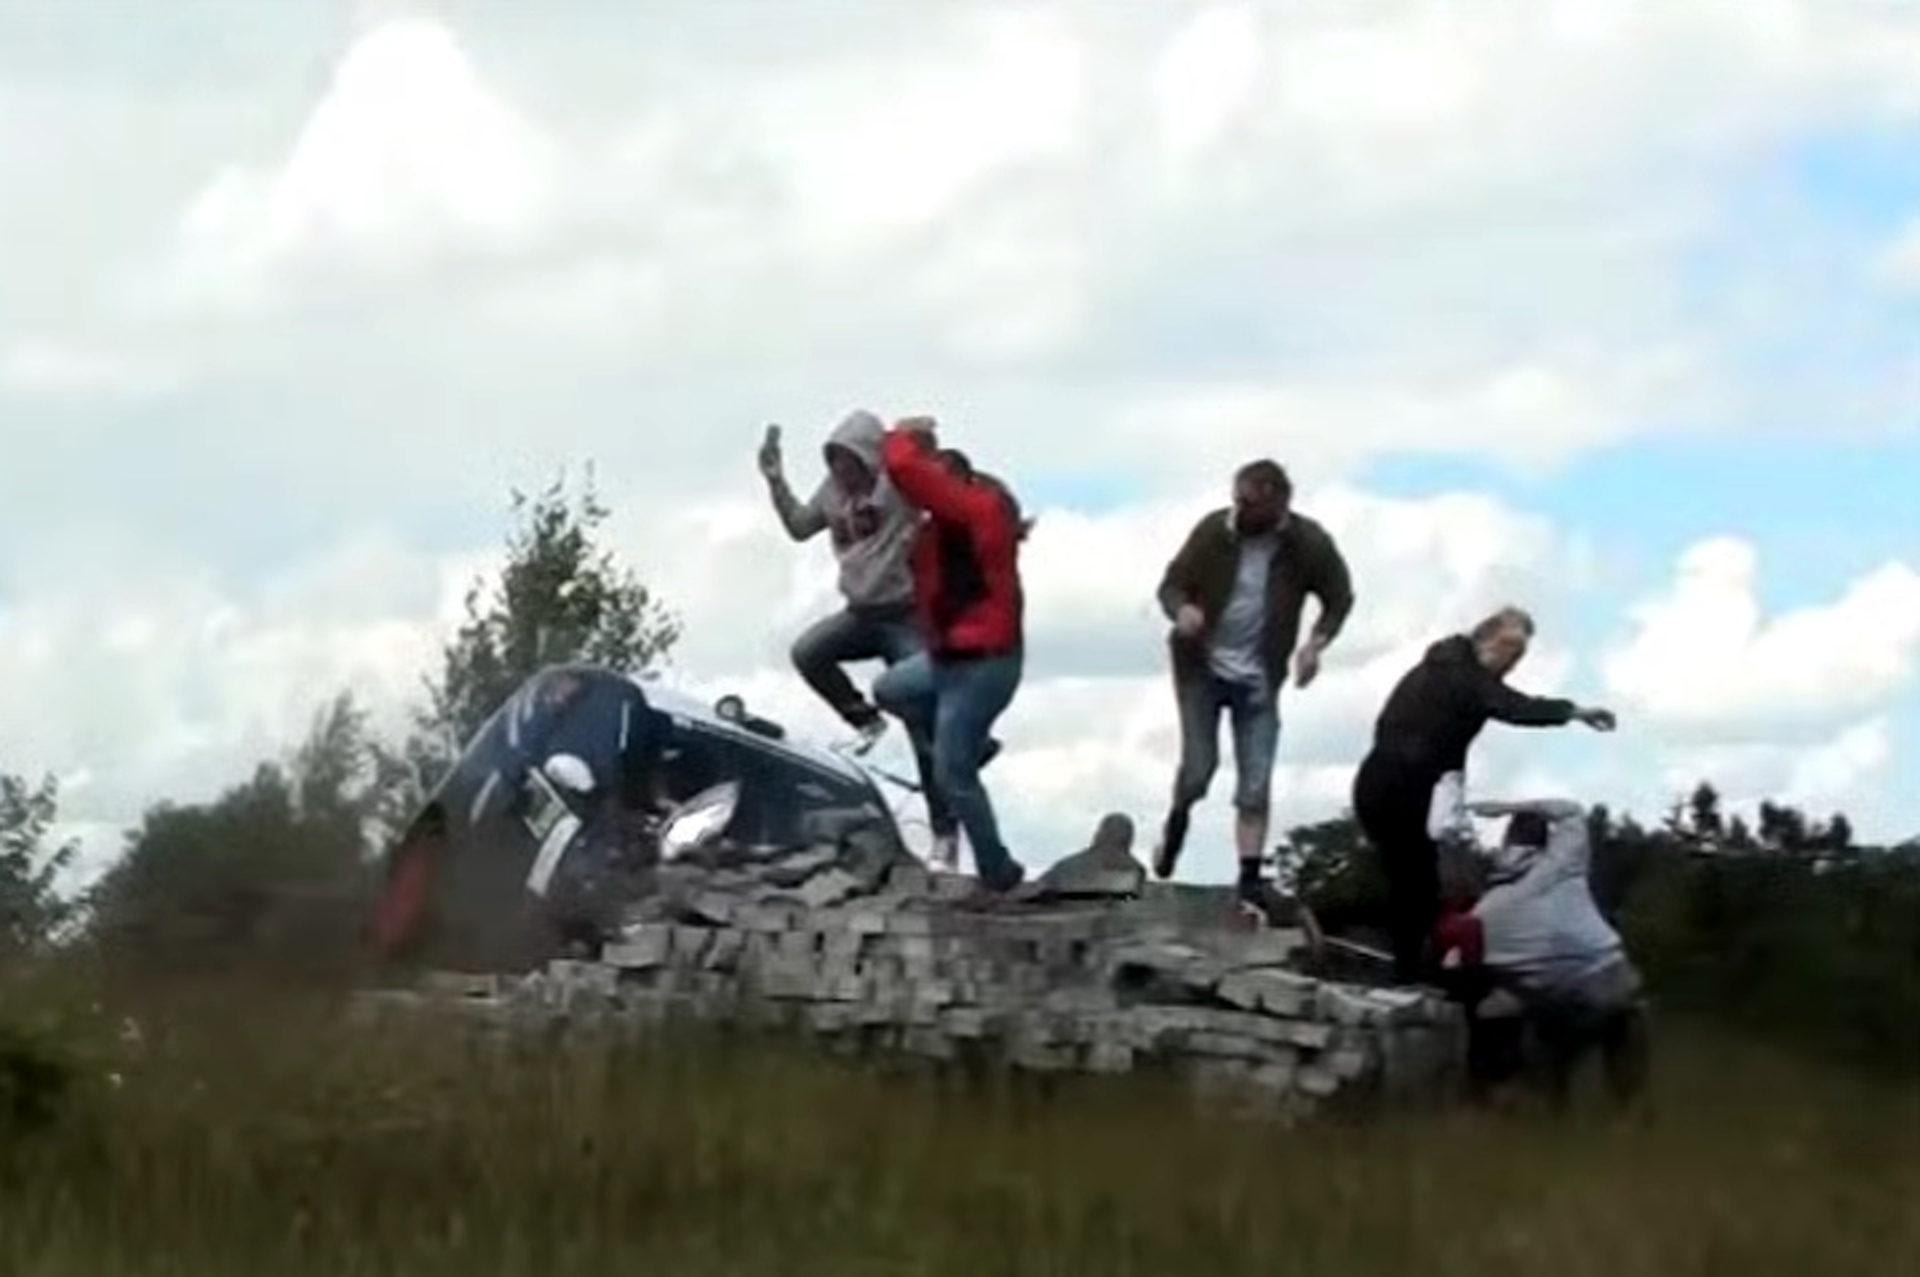 Rally Car Slides Off Course, Nearly Hits Crowd of Spectators [Video]